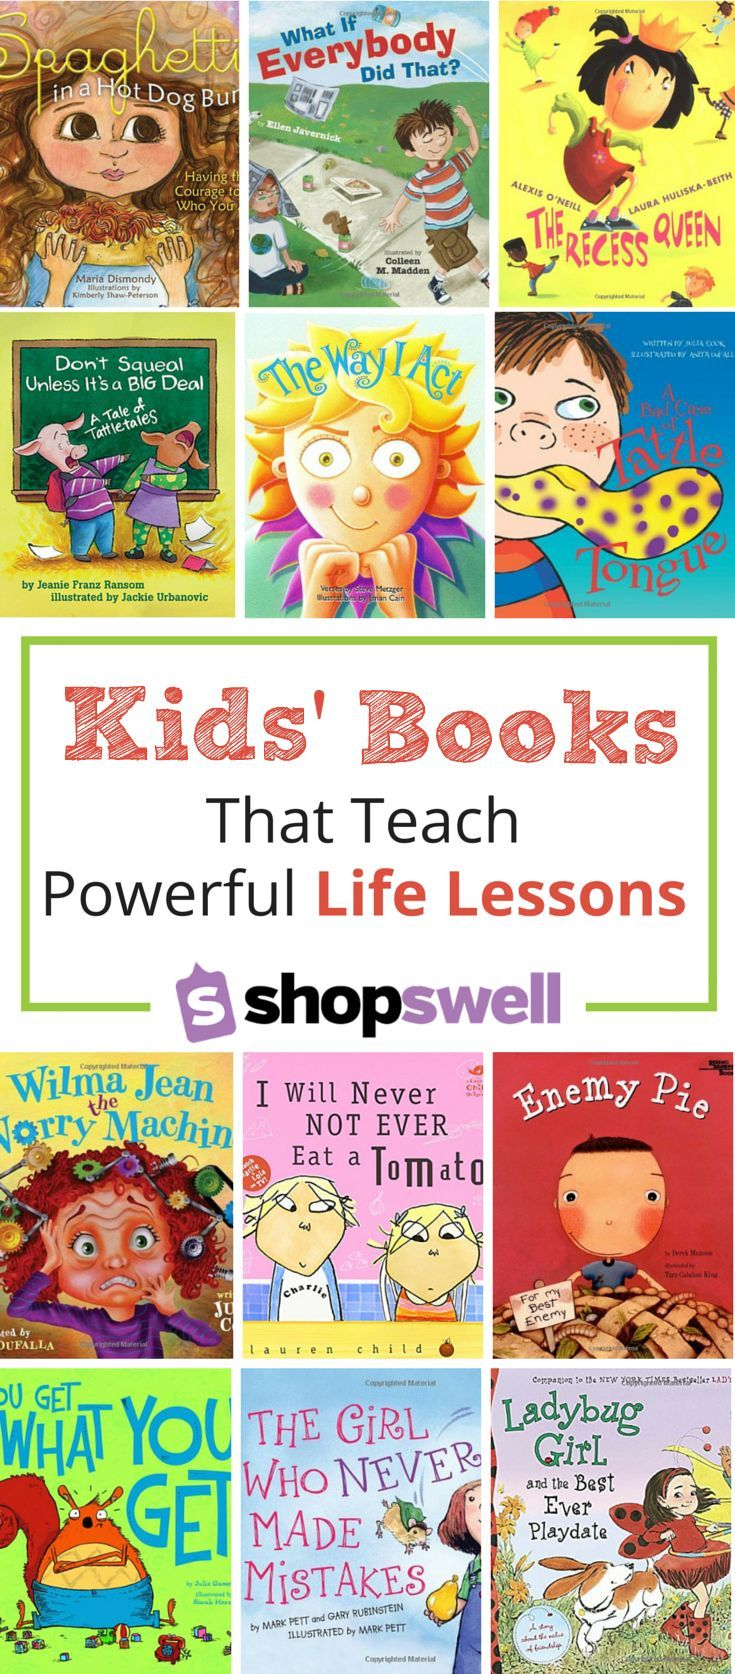 Kids' books that teach lessons